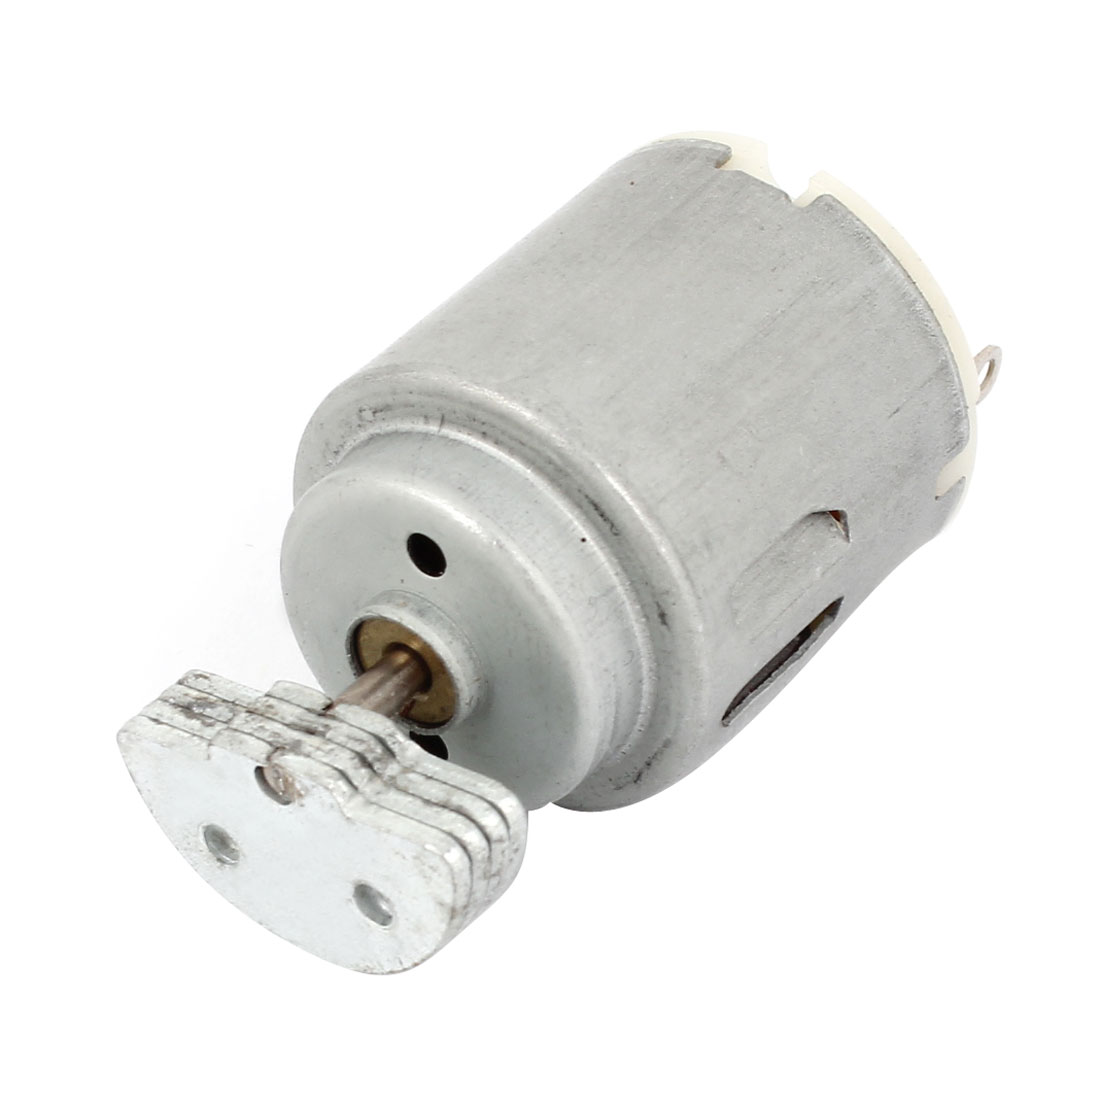 High Torque Cylinder Shape DIY Toy Motor DC 1.5-6V 17000r/min